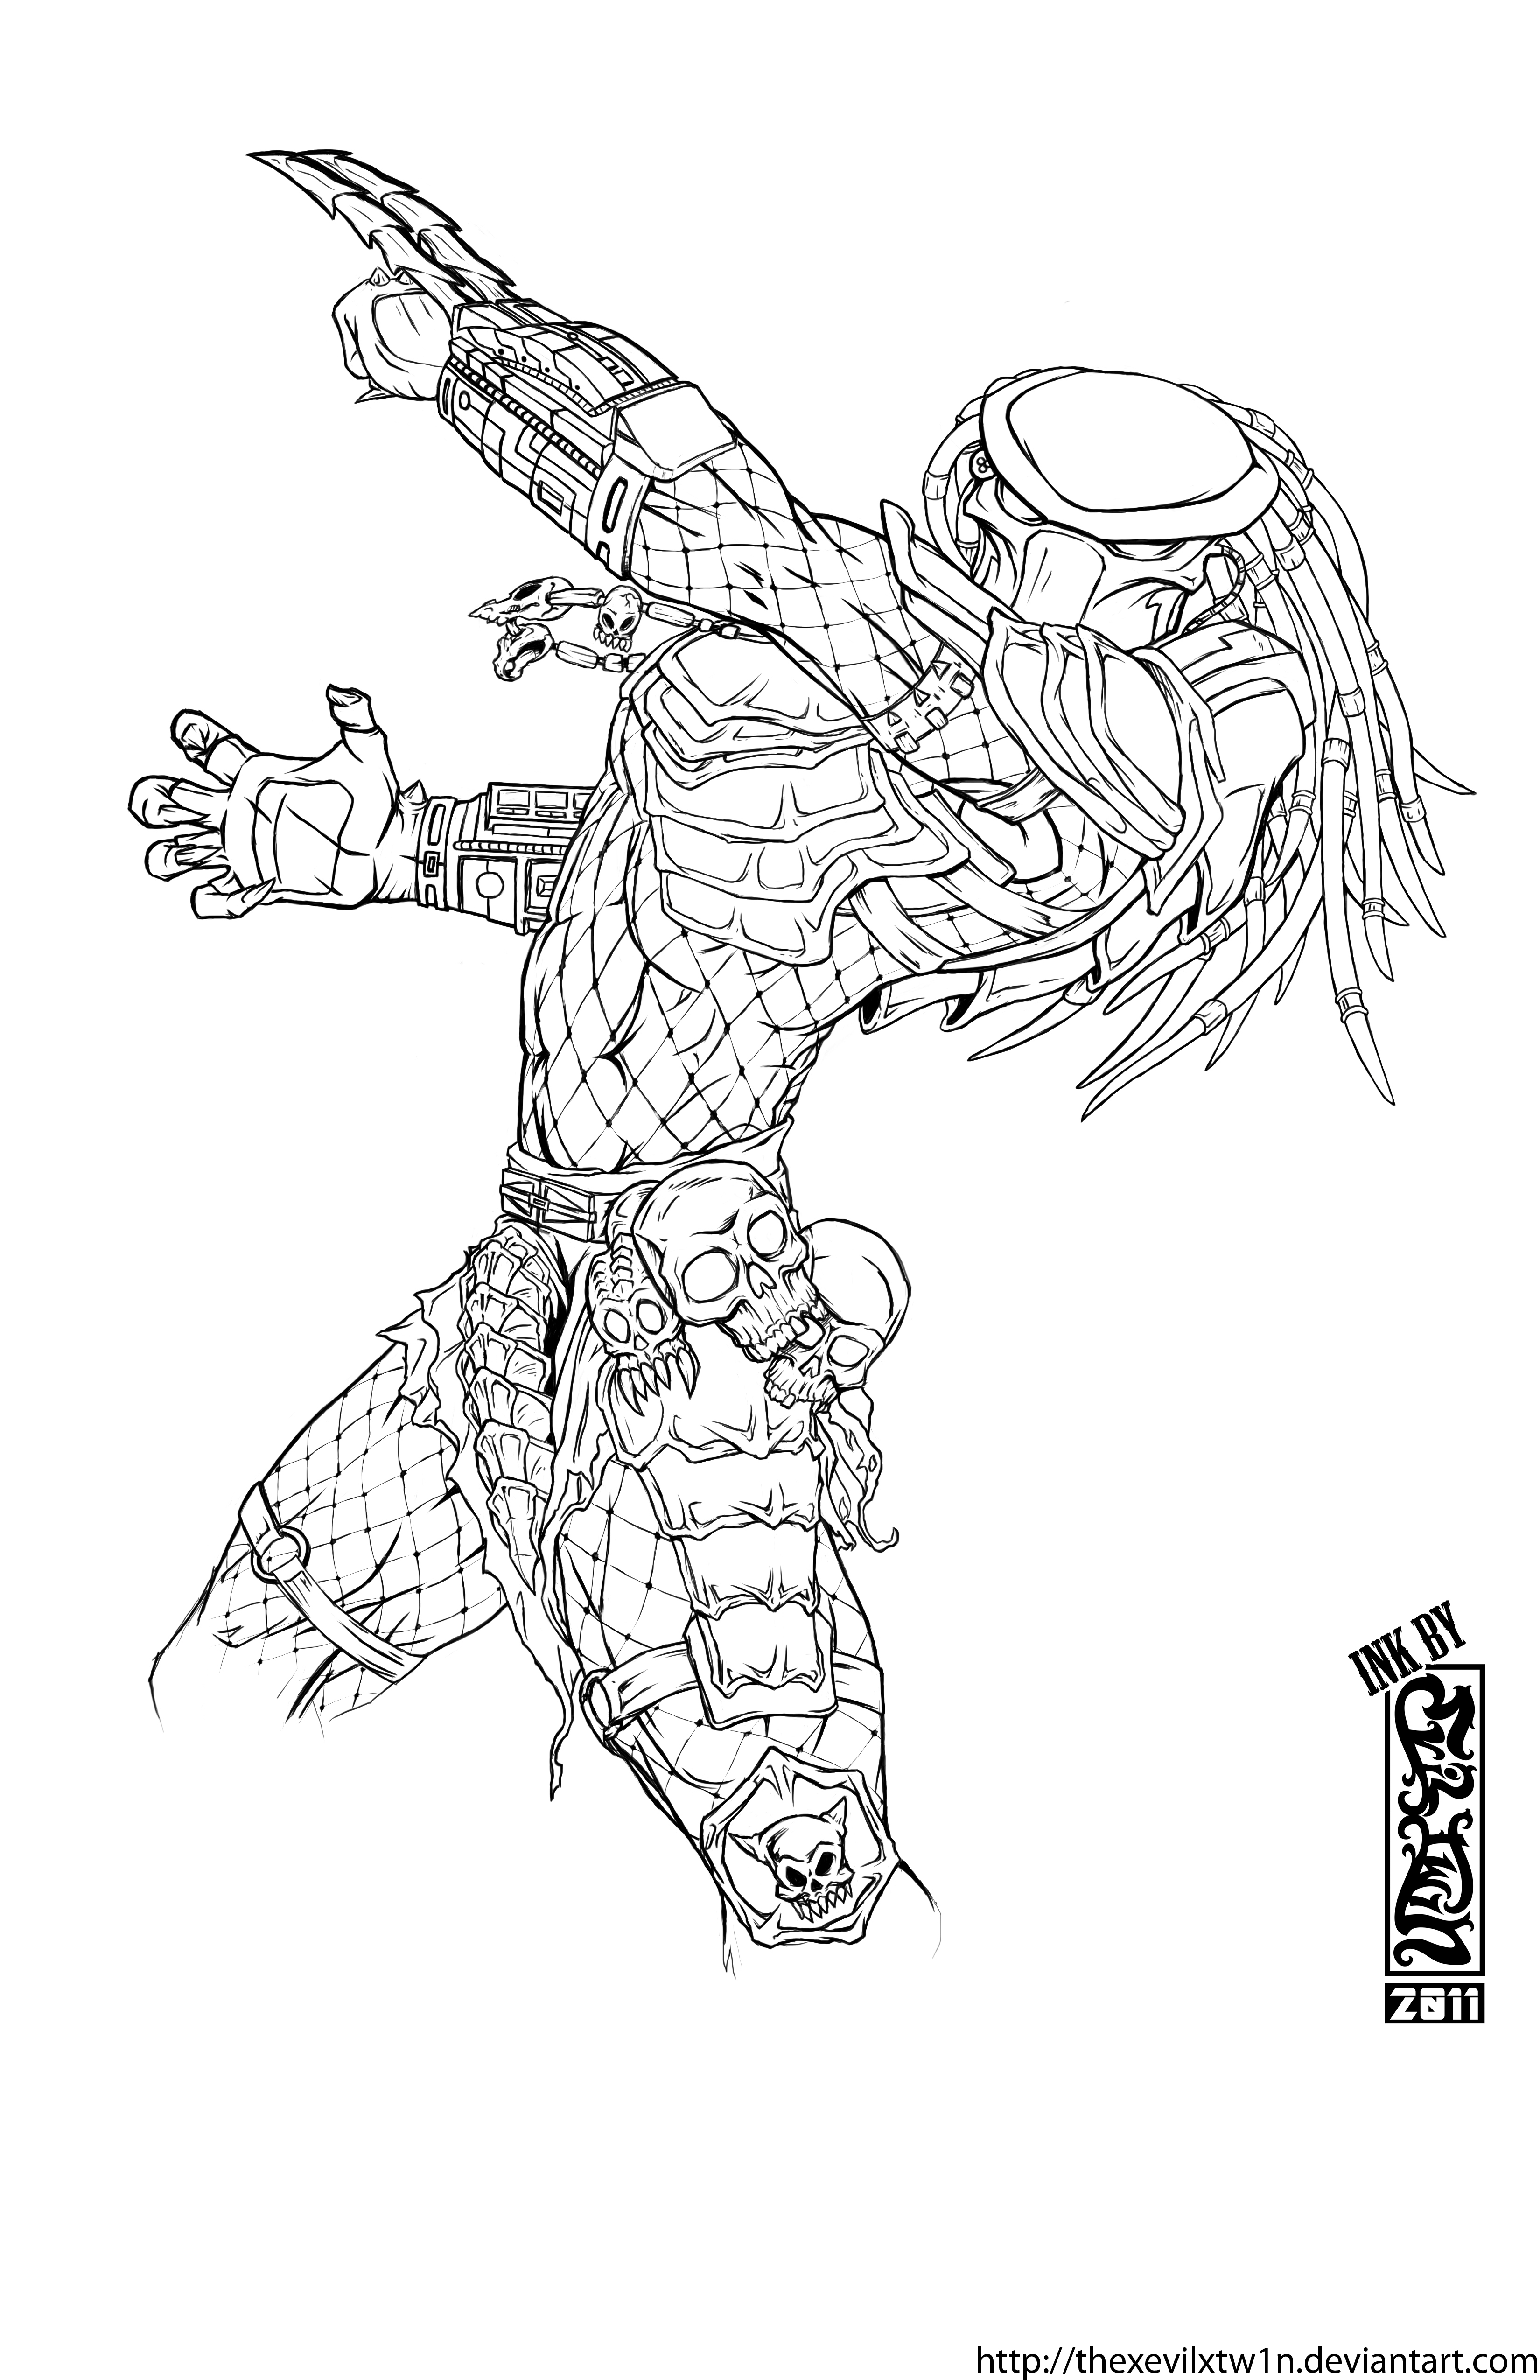 predator alien coloring pages - photo#26